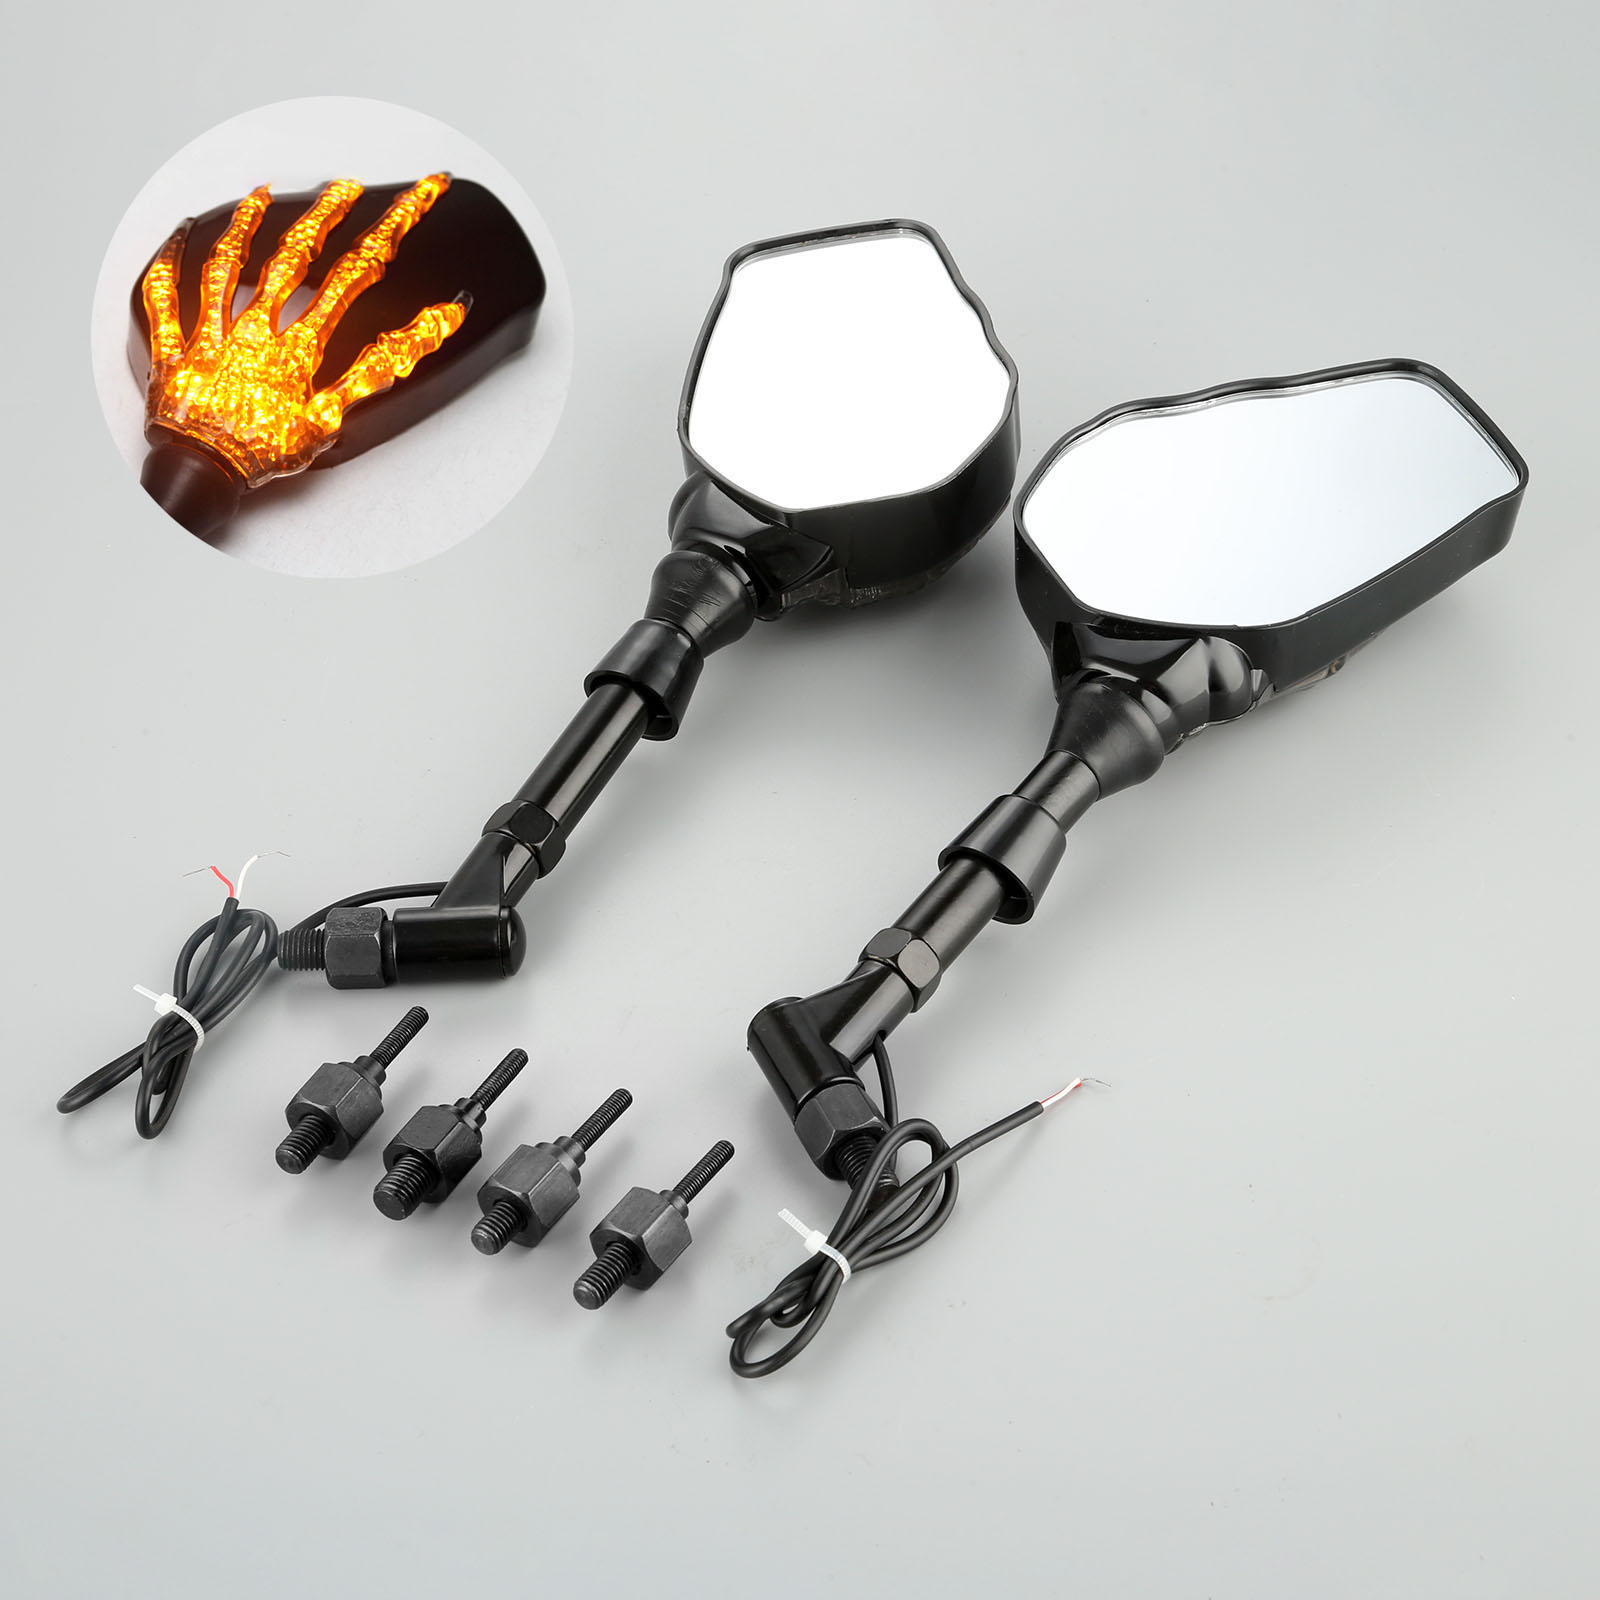 Rear View Mirrors 8mm Universal Motorcycle Scooter Aluminum Flame Pattern Side Rear View Mirrors Motorcycle Hand Claw Side Rear View Mirrors Black 1 Pair